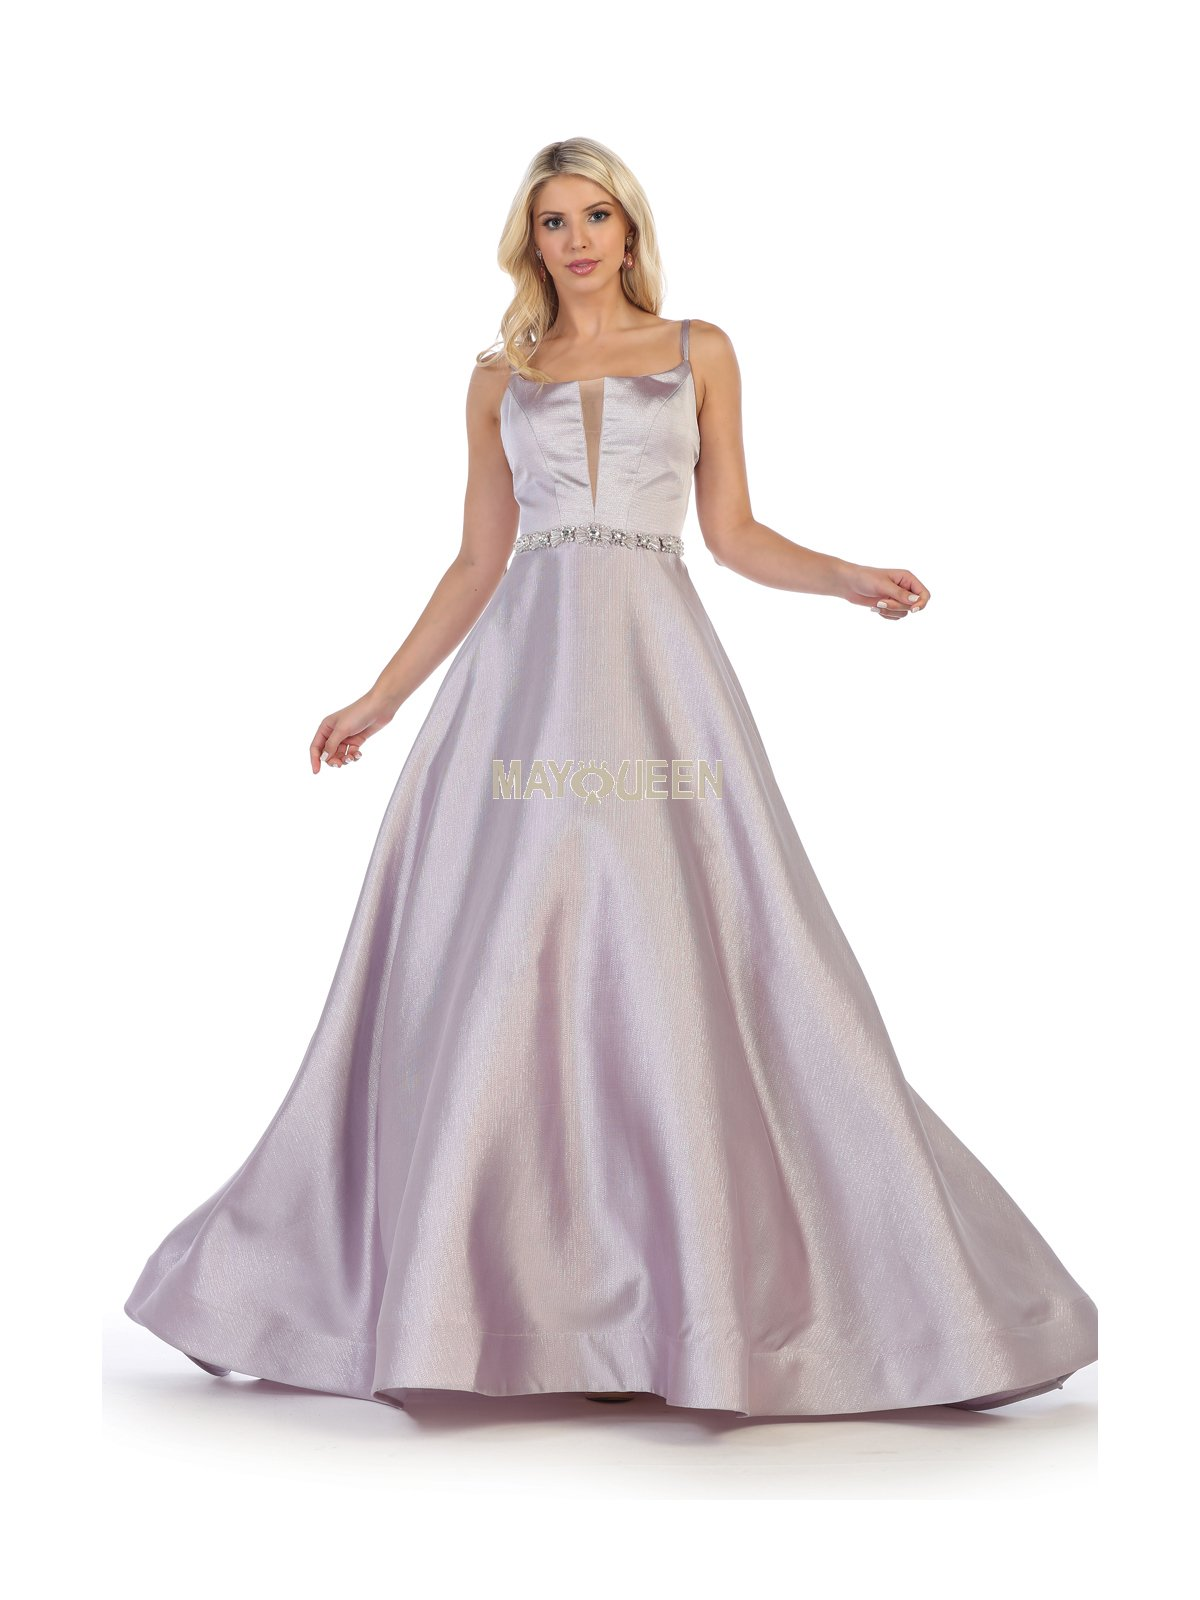 Purple Satin Ball Gown With Jeweled Belt & Cutout Back